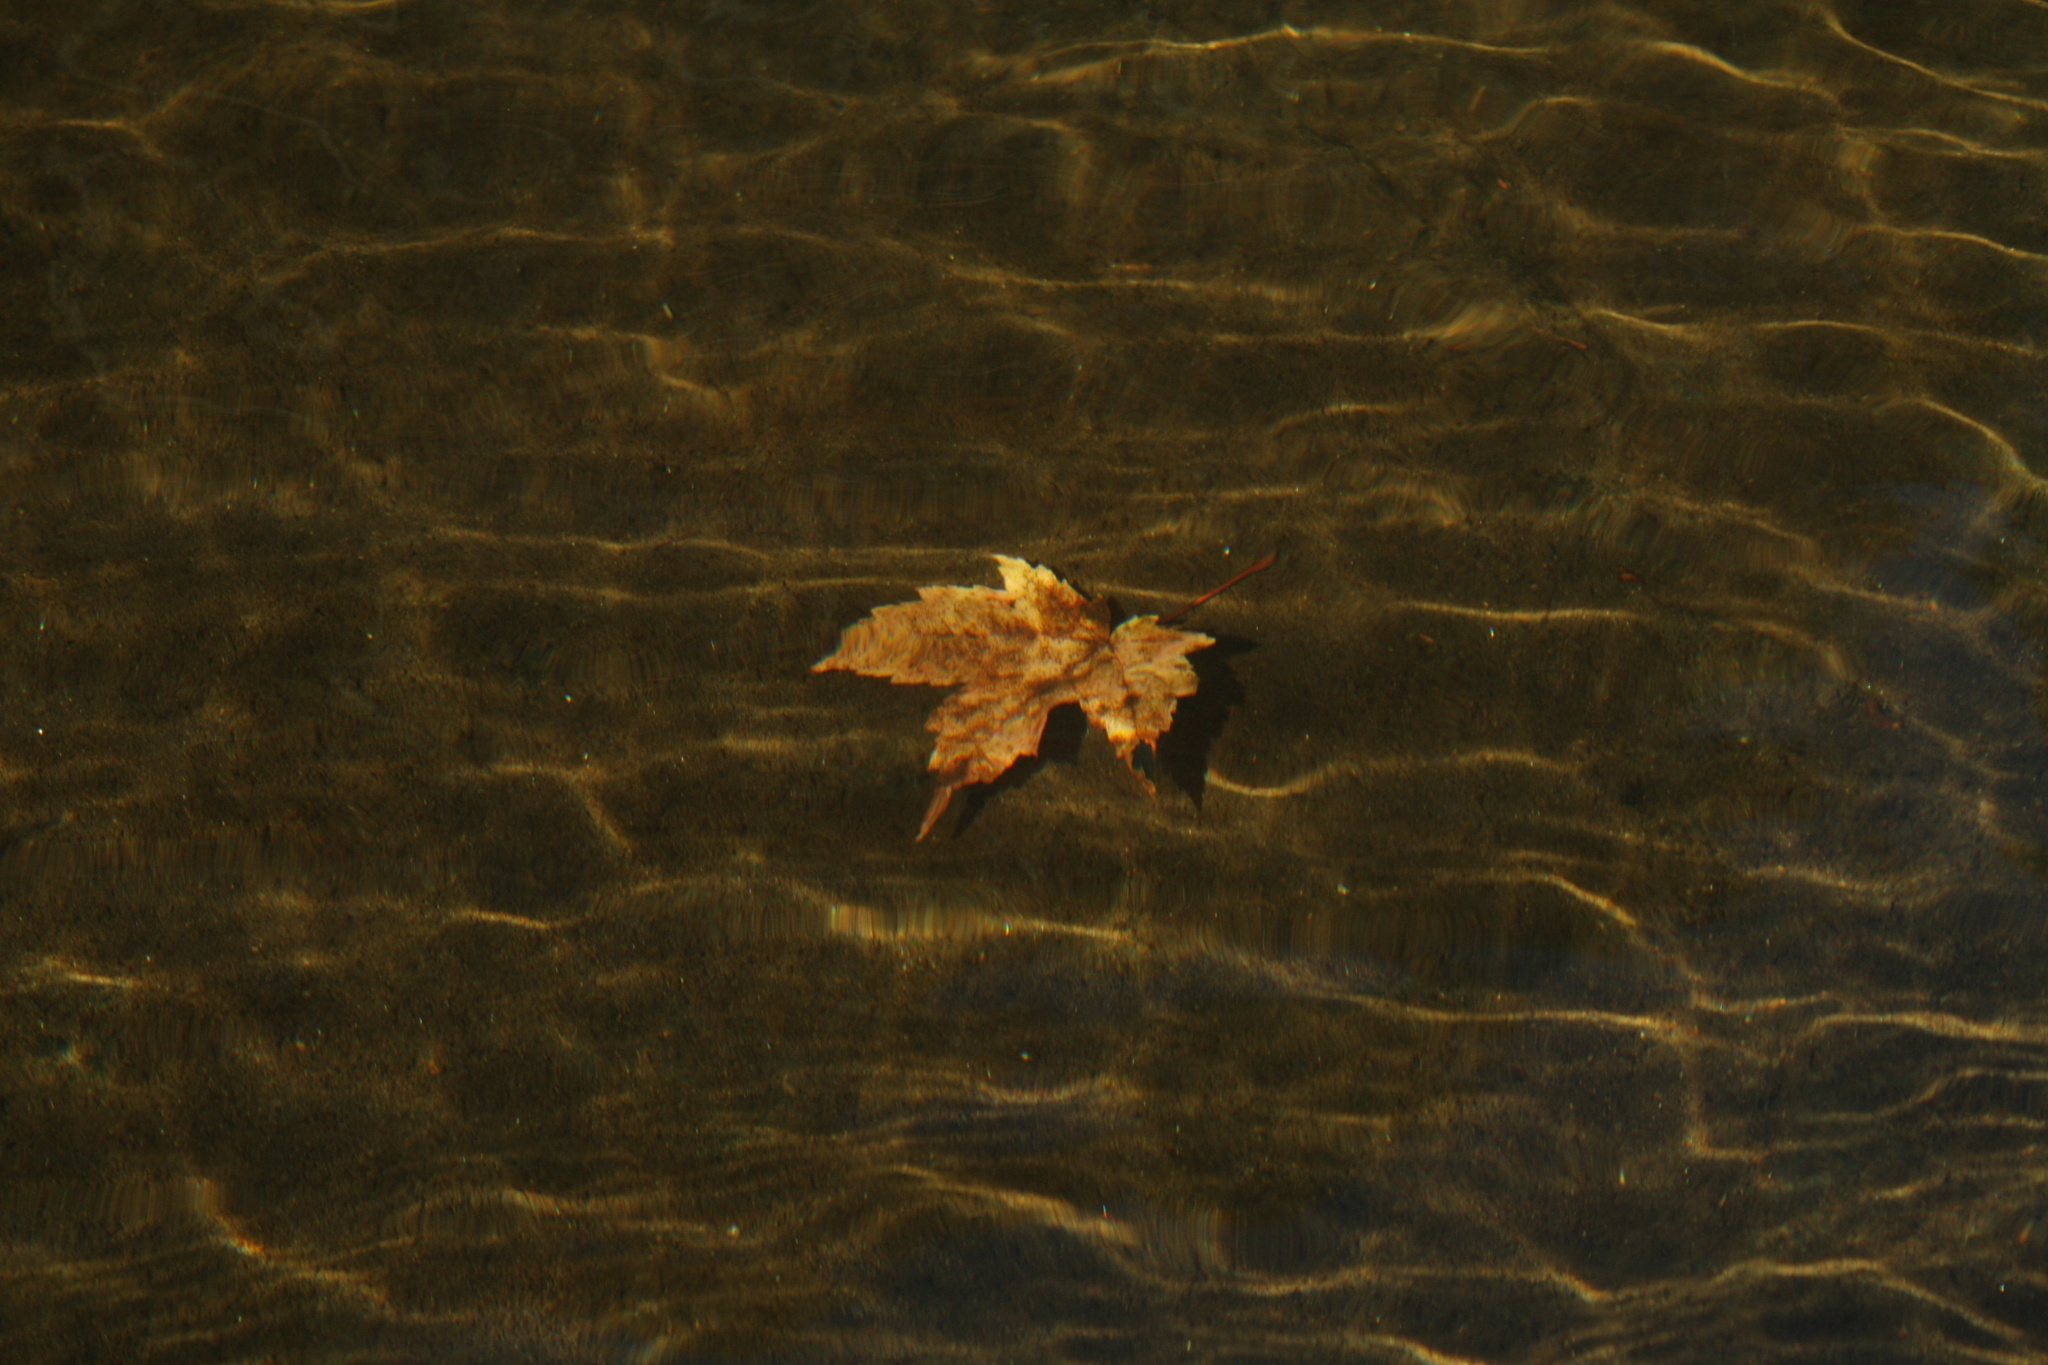 Leaf Under Water by Isabelle A